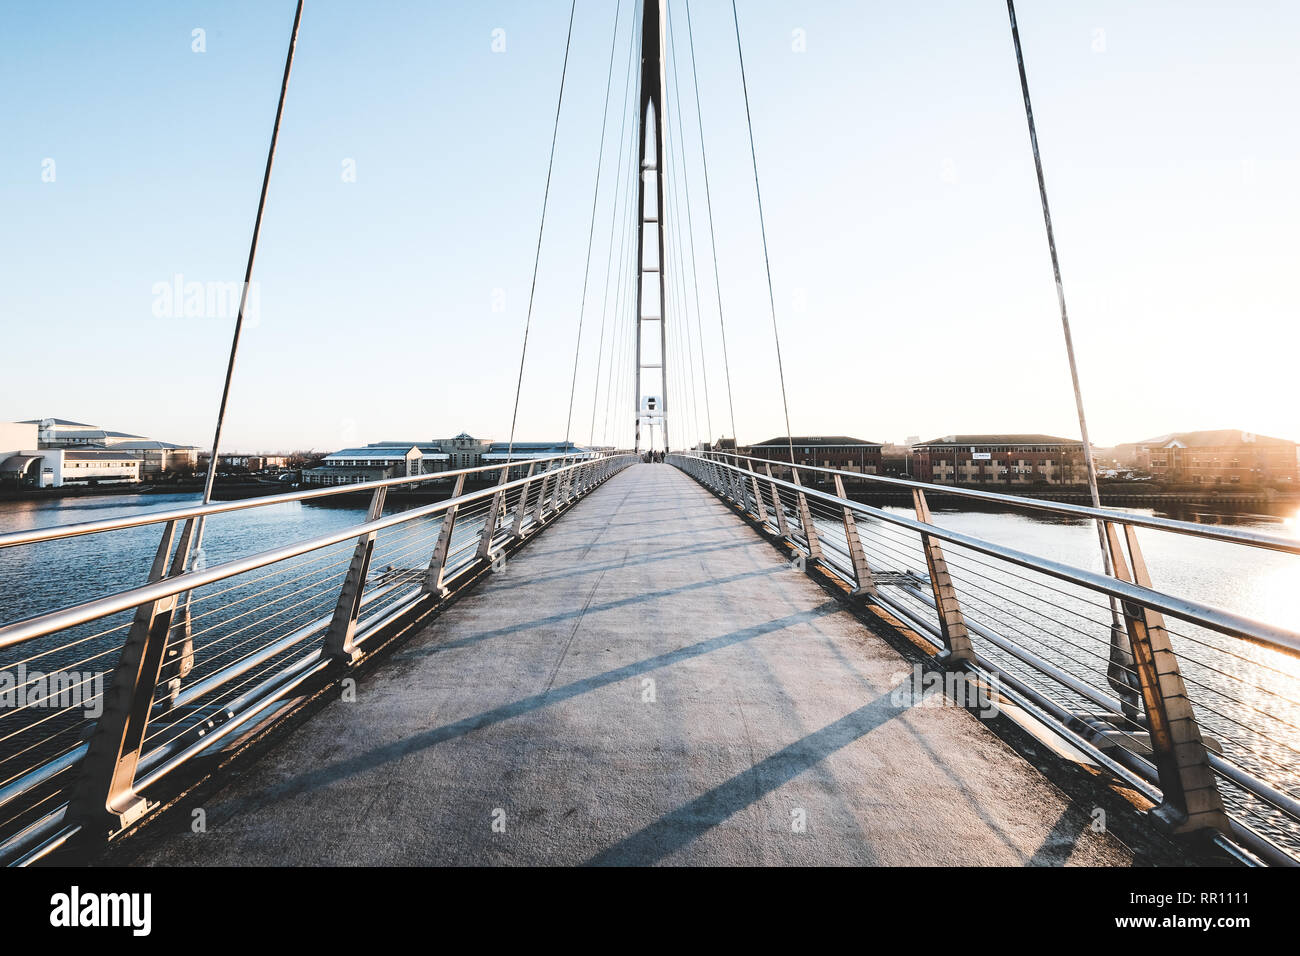 Infinity Bridge in Stockton-on-Tees, England Stock Photo